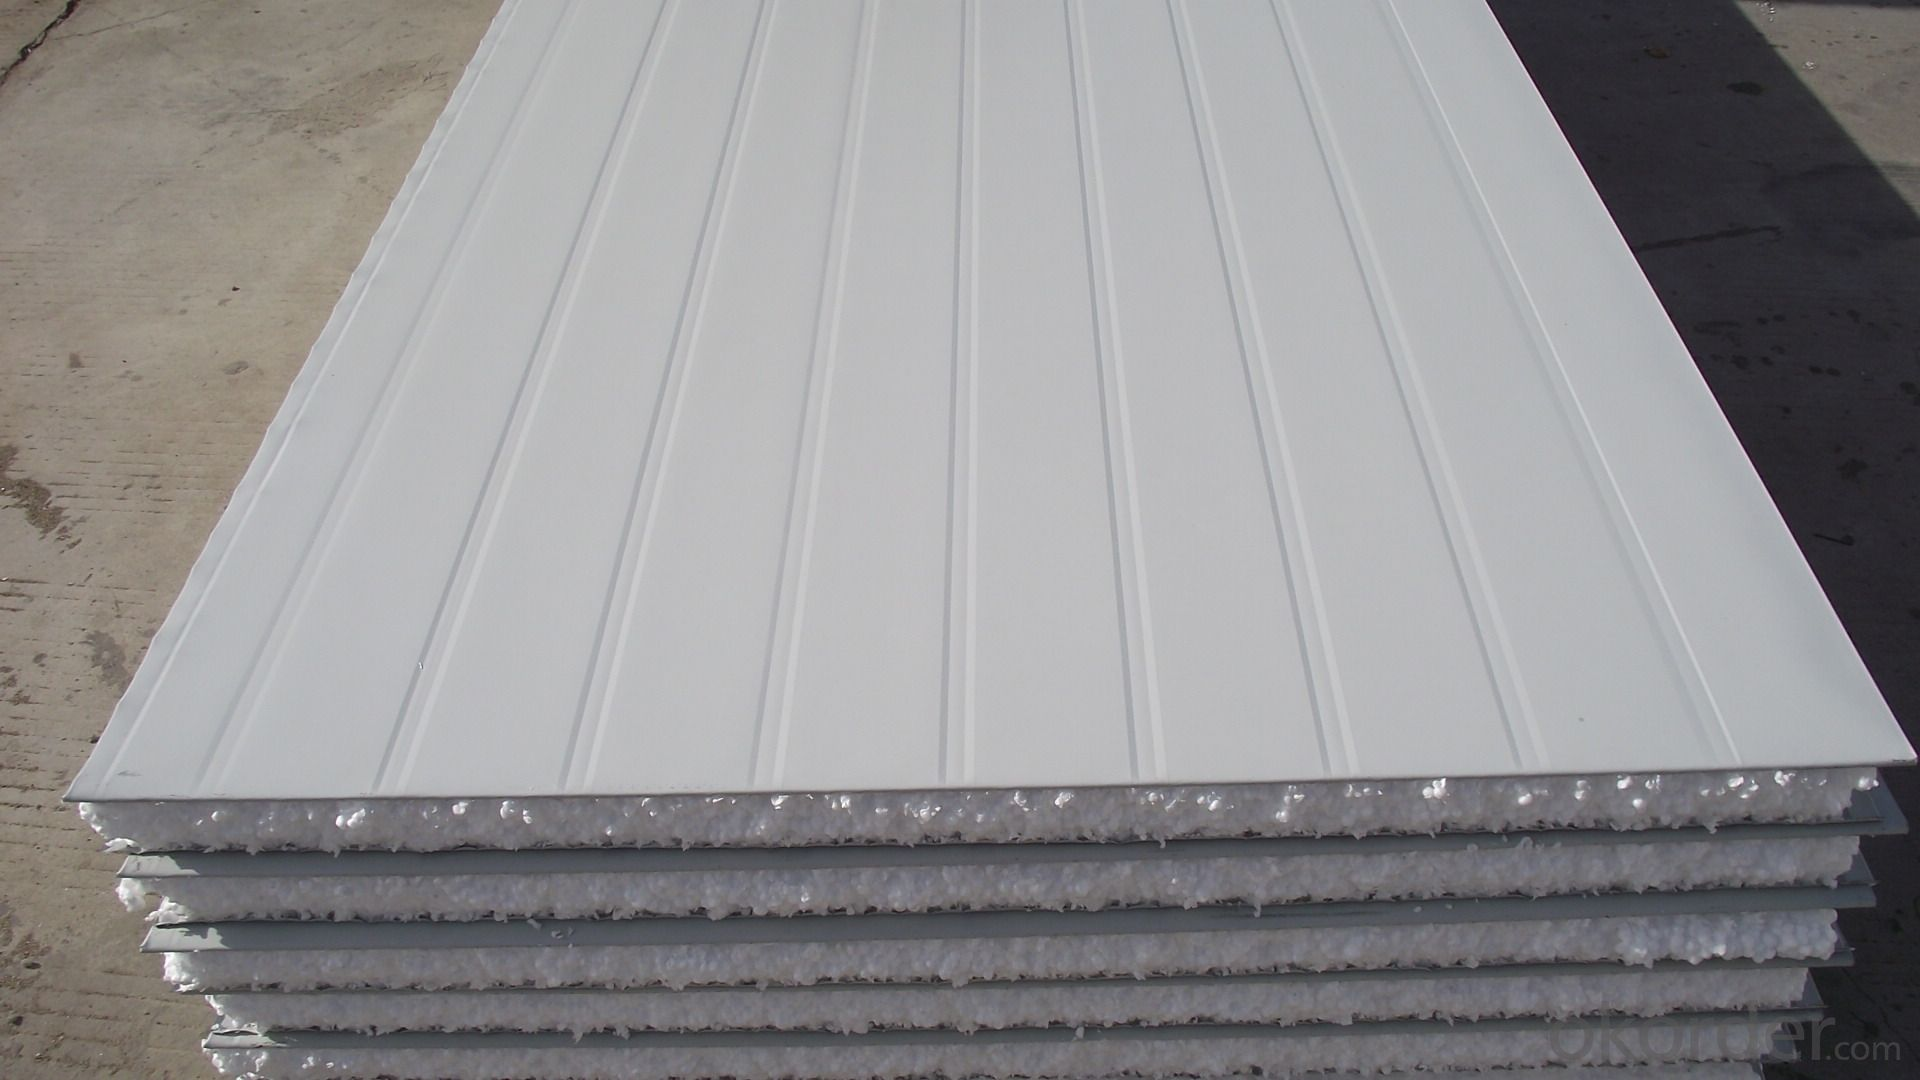 Buy Plastic Foam 3mm Thick Sell Black White Pvc Foam Sheet